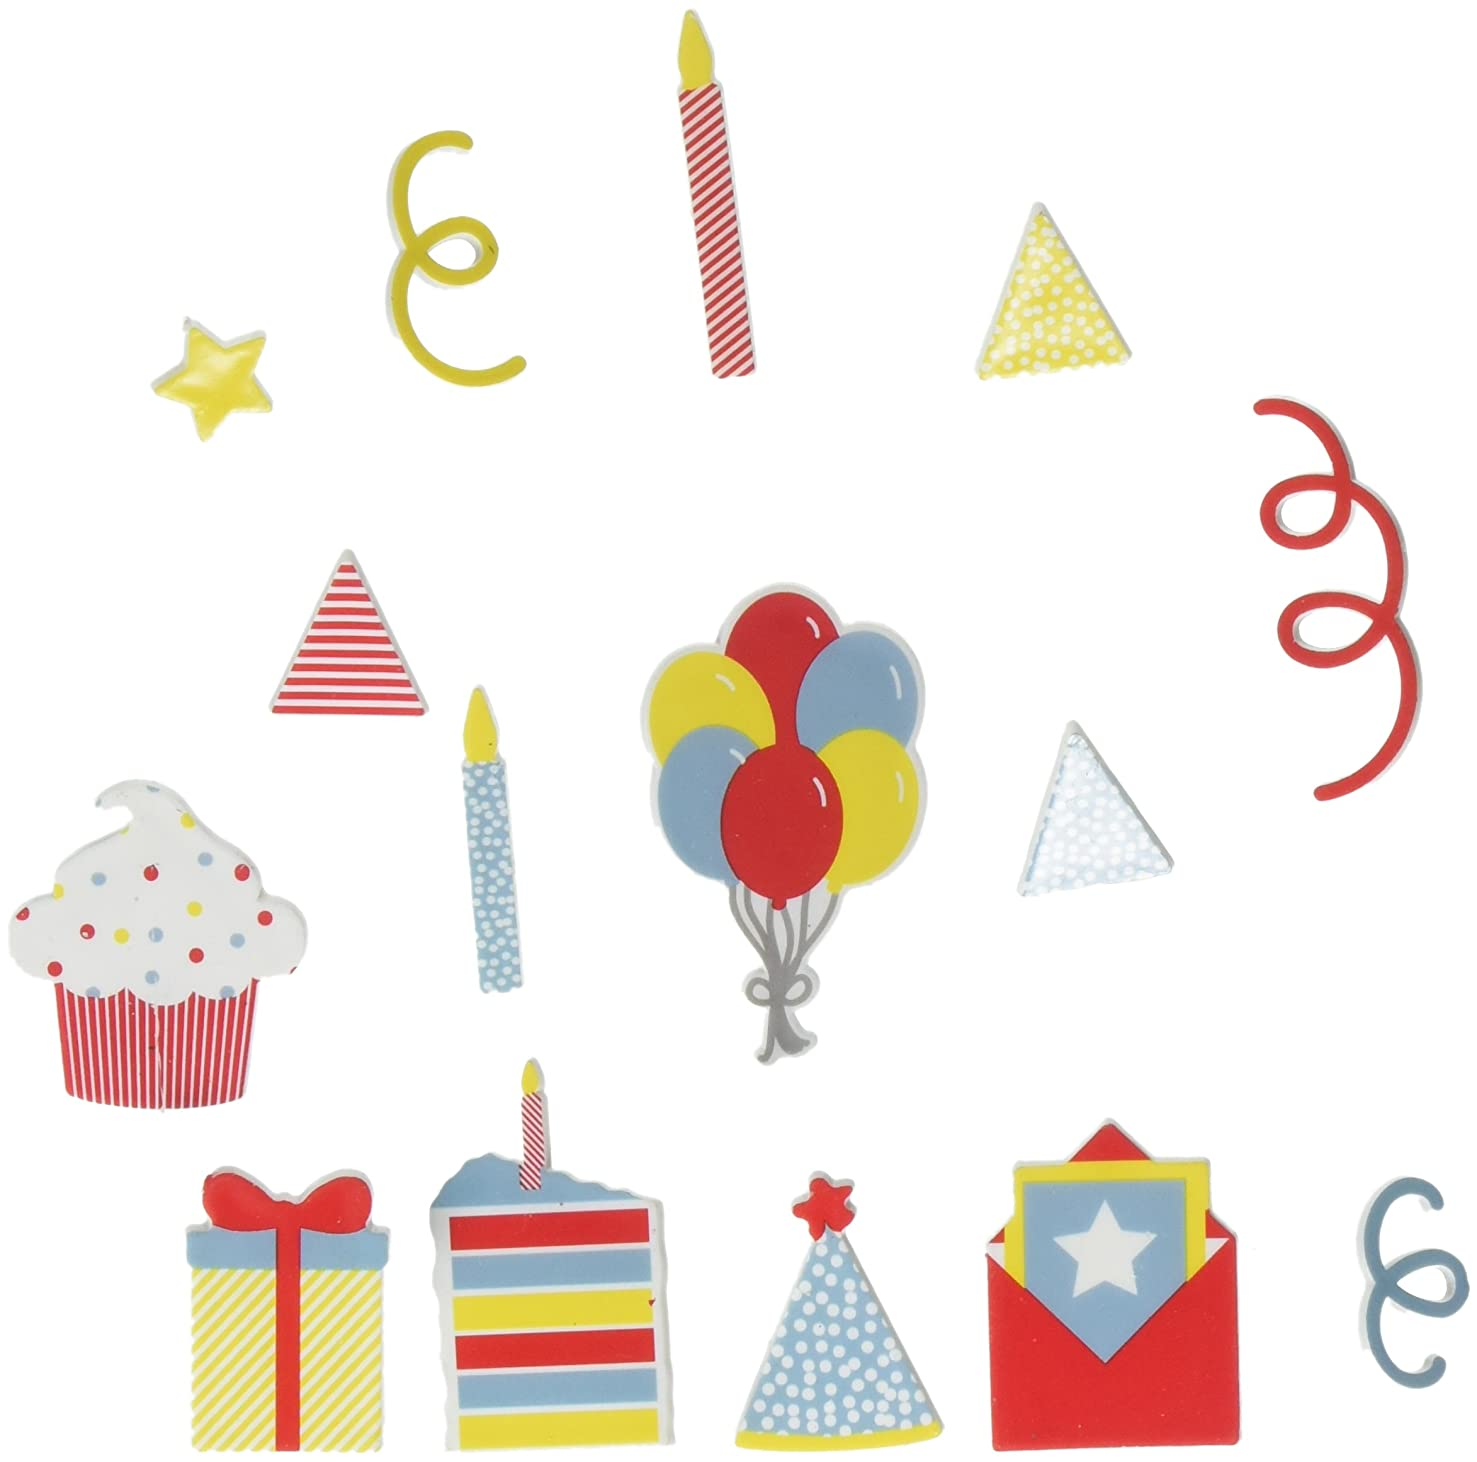 American Crafts 15 Piece Celebration Icon Pack Die Cuts with a View Letterboards